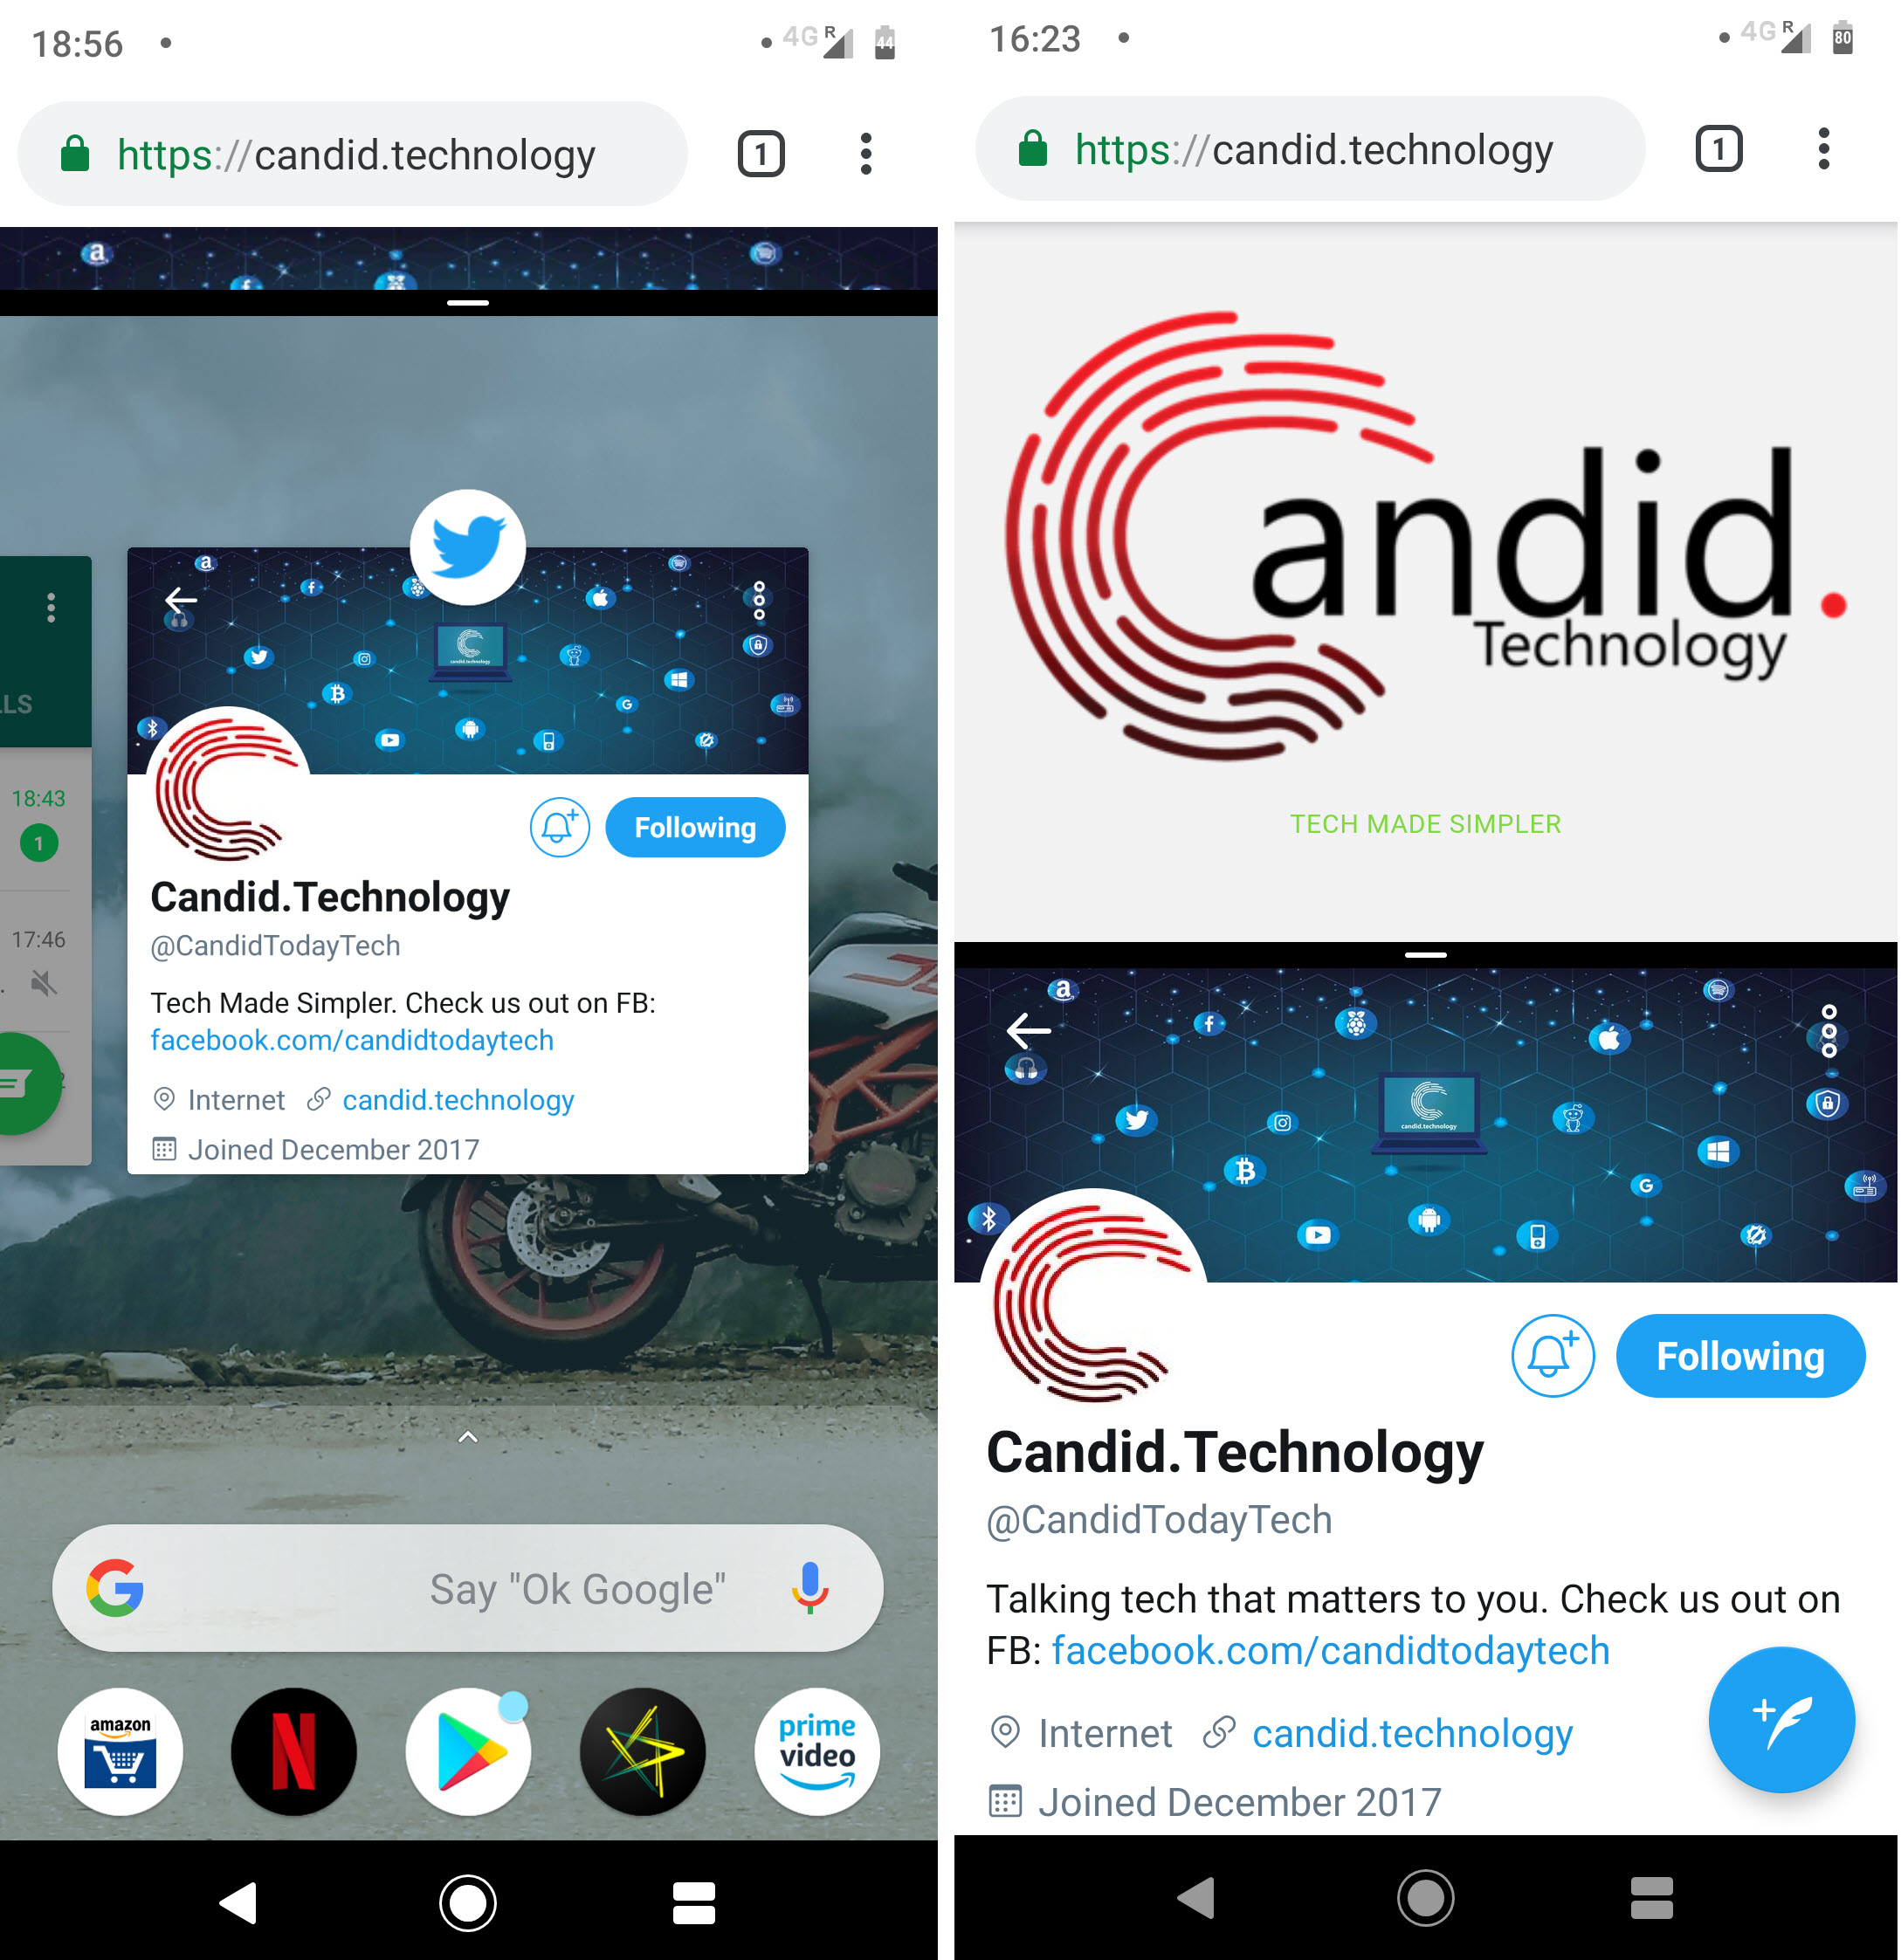 How to enable split screen and multi-task on Android 9 Pie